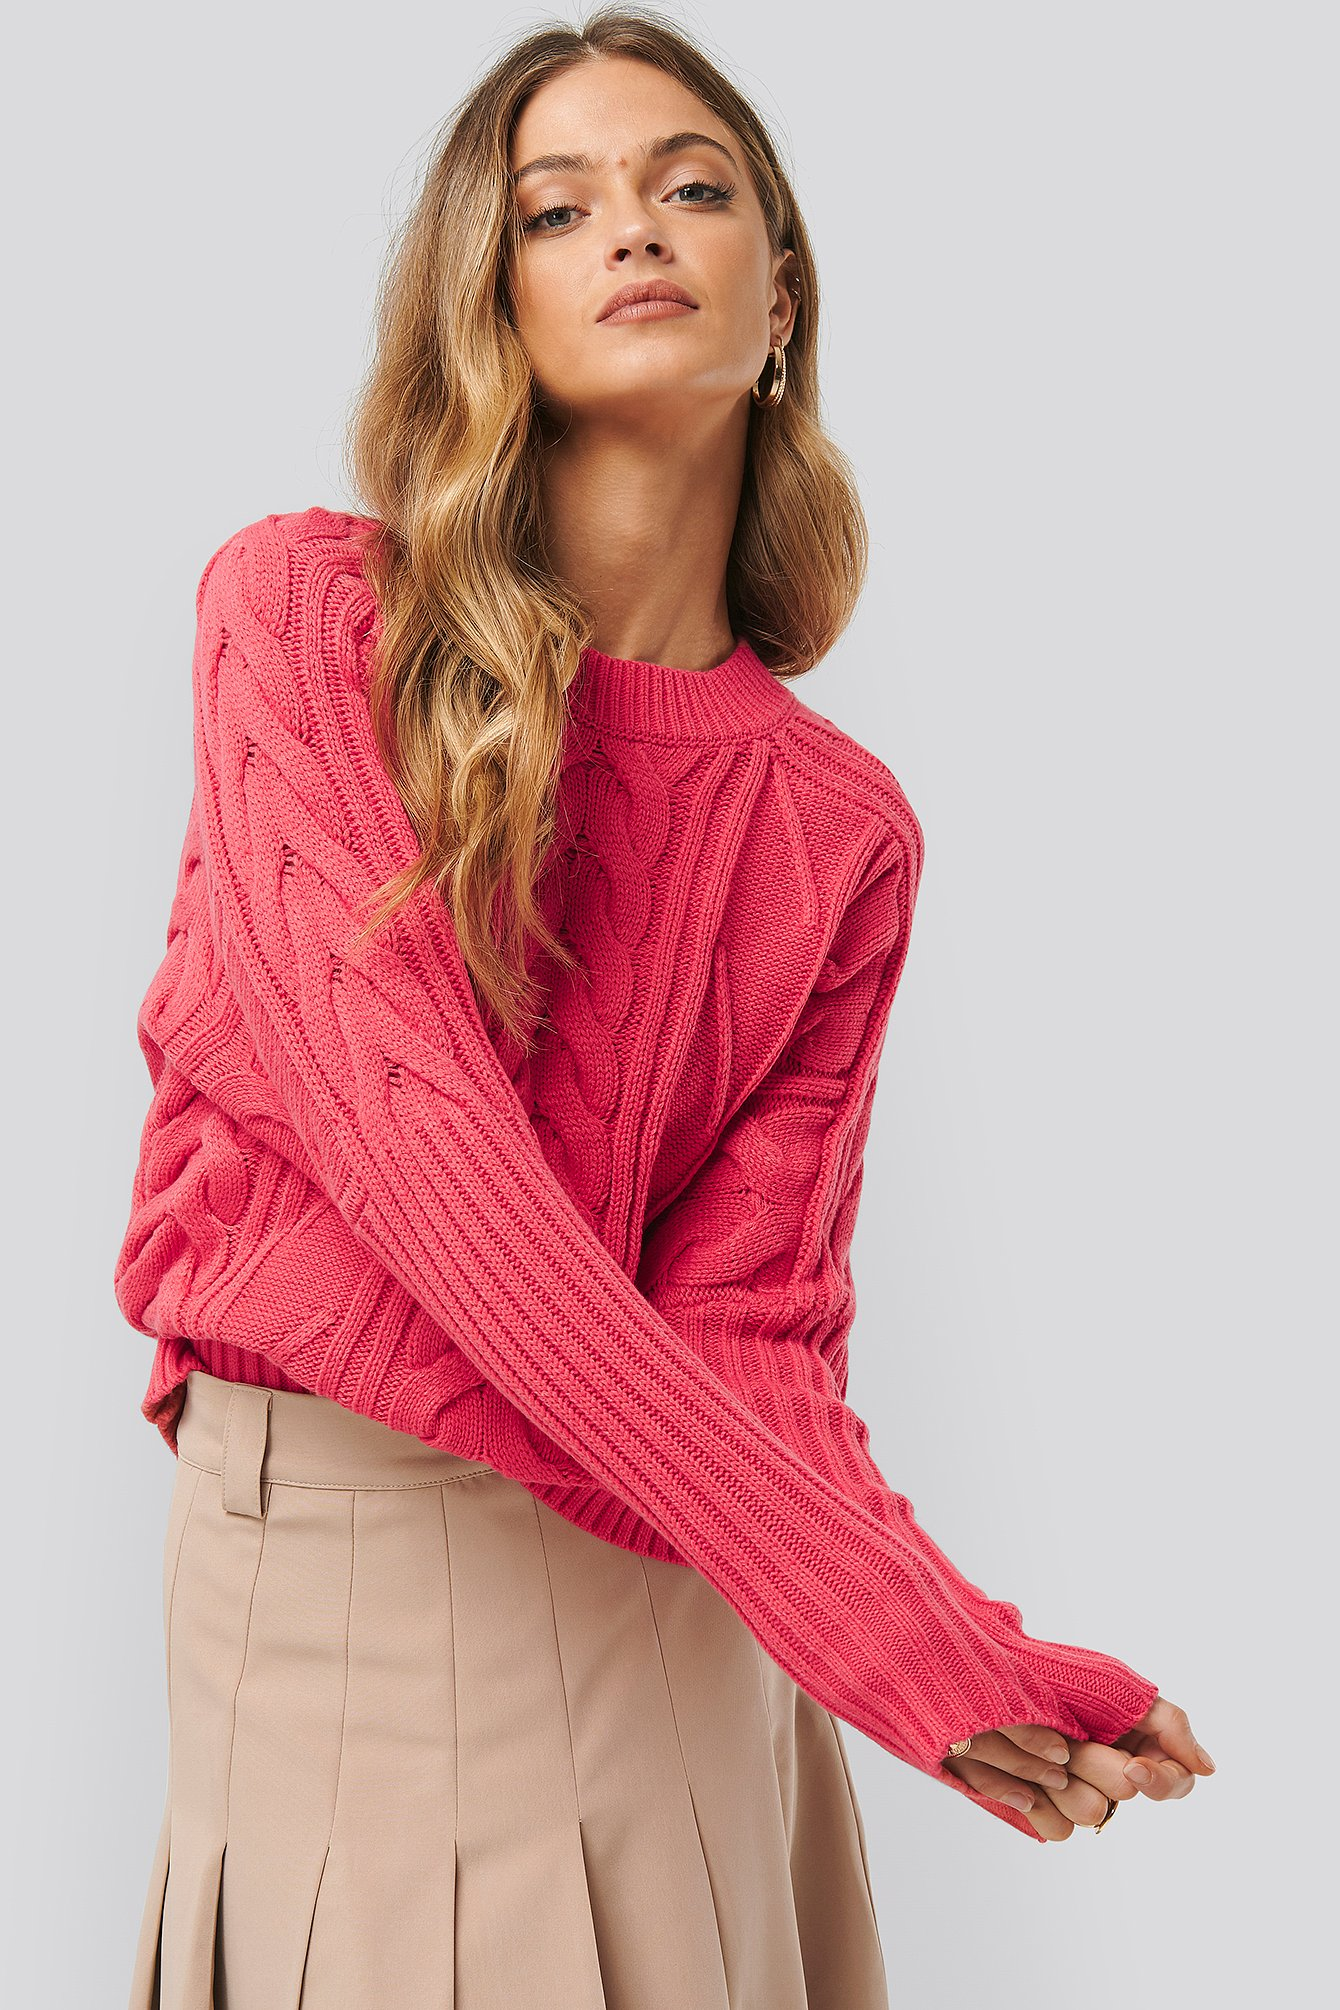 na-kd -  Round Neck Cable Knitted Sweater - Pink